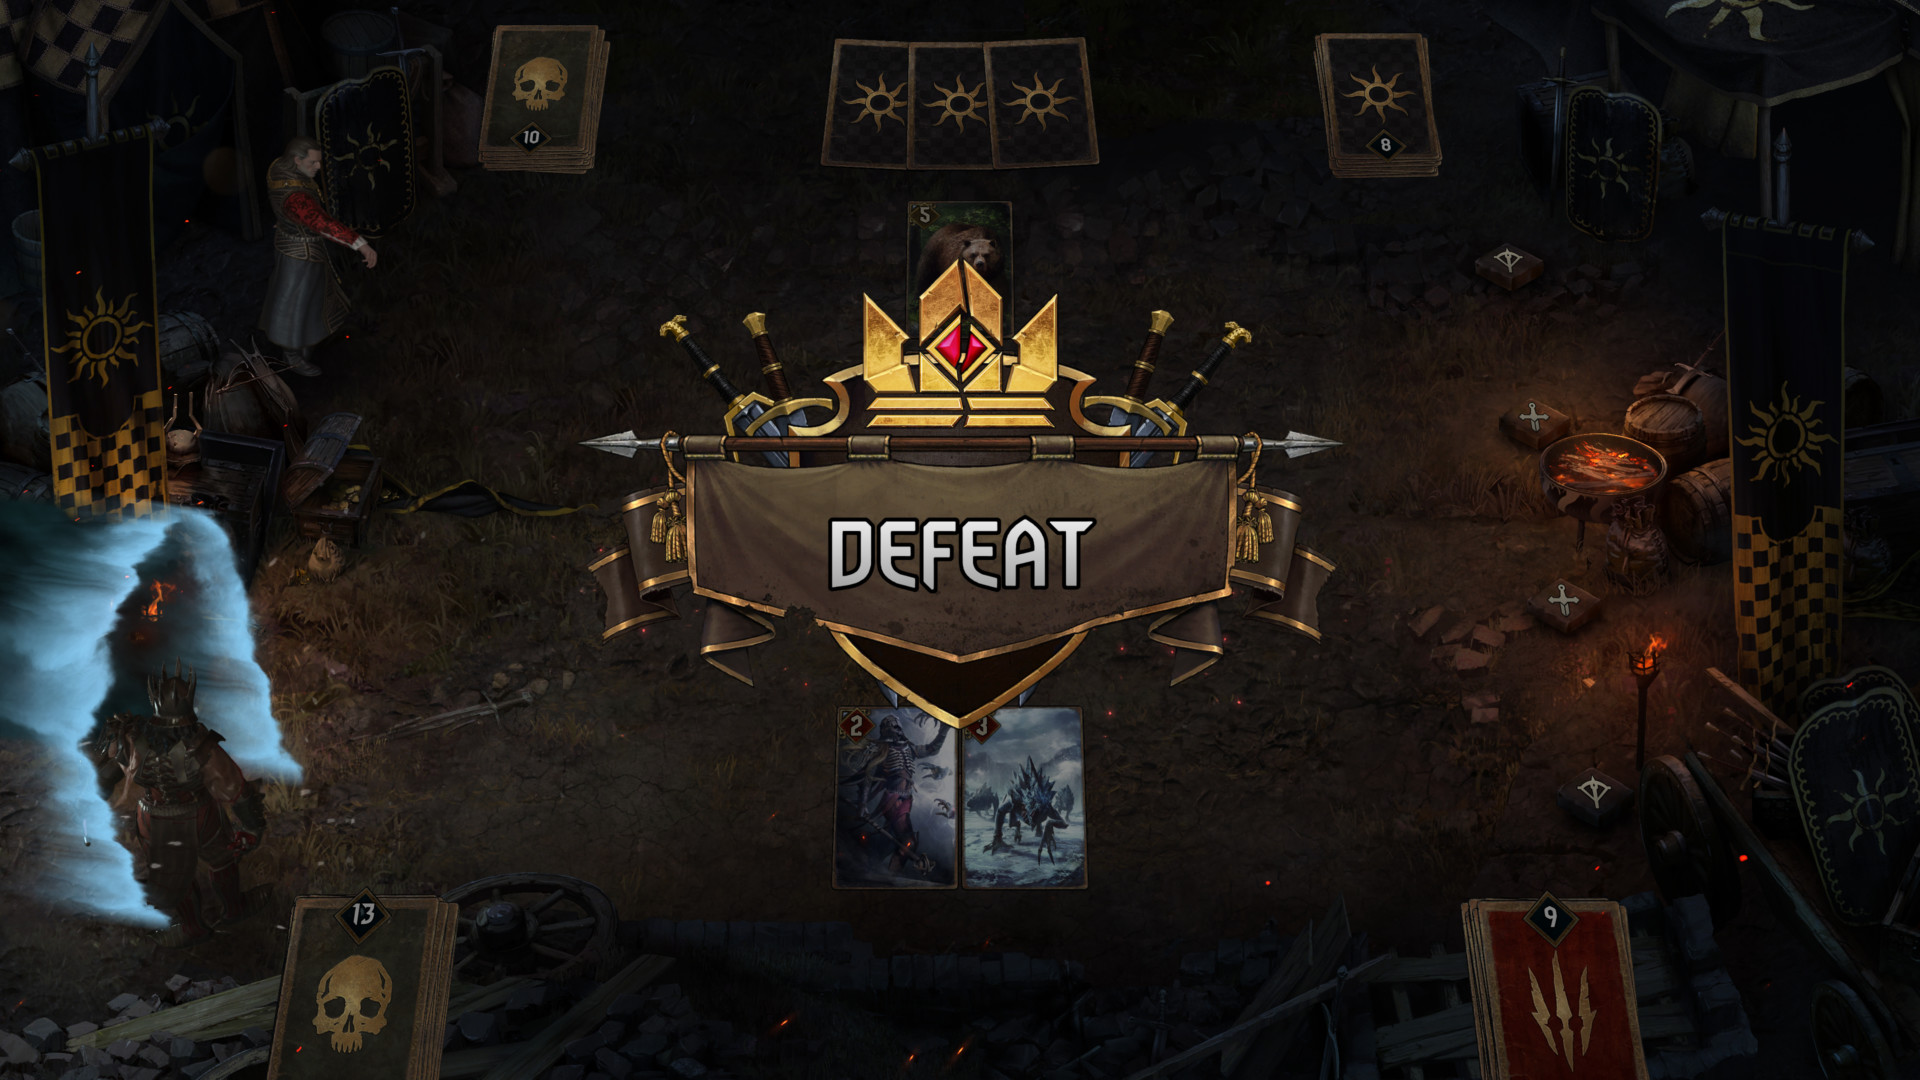 Defeat screenshot of Gwent: The Witcher Card Game video game interface.